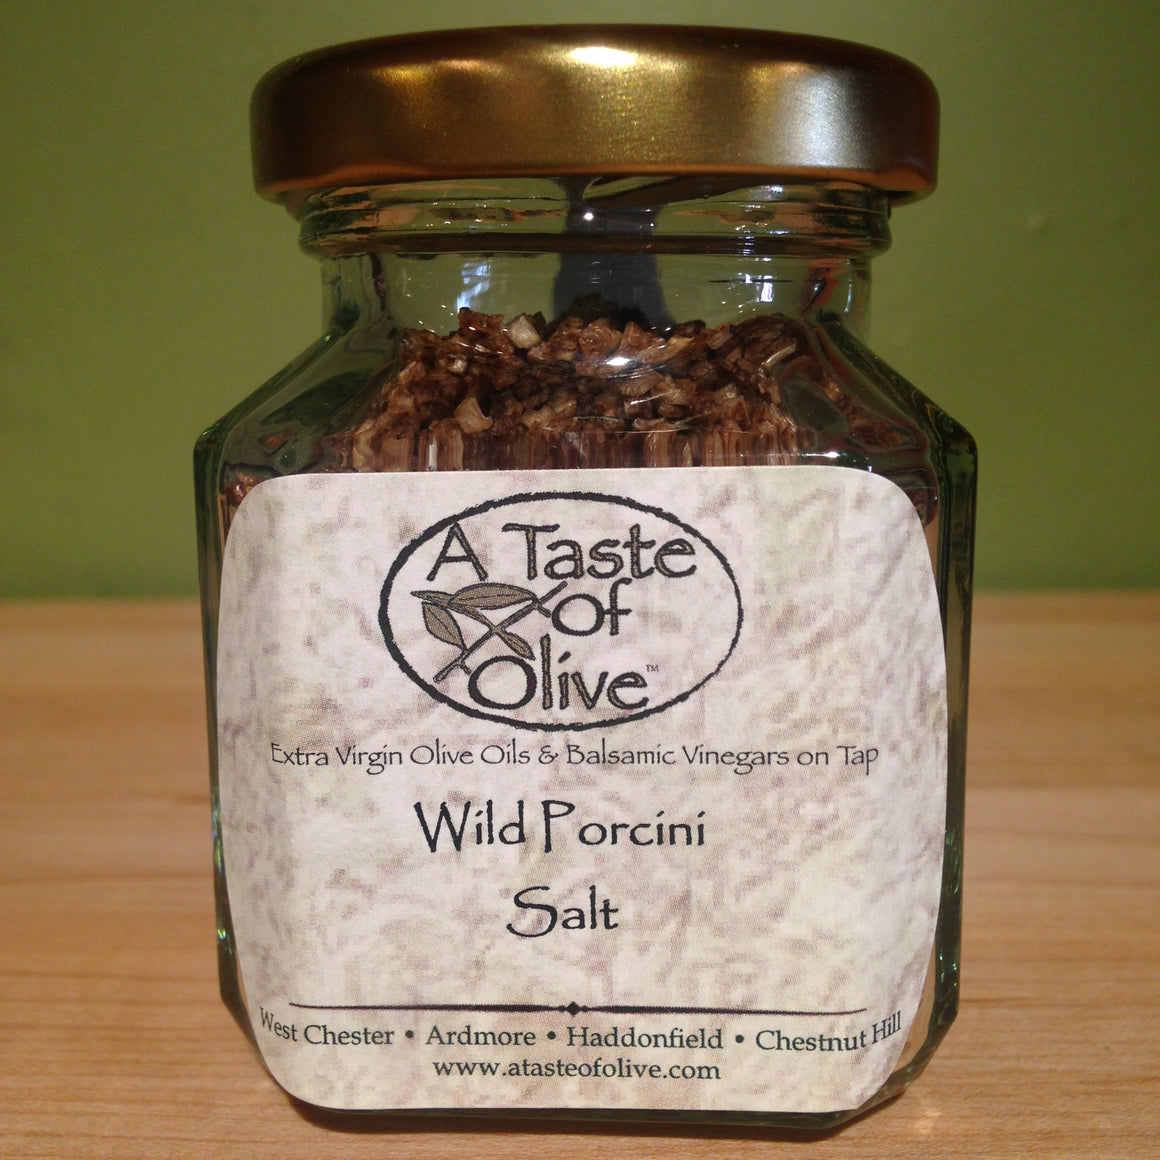 Wild Porcini Sea Salt - A Taste of Olive